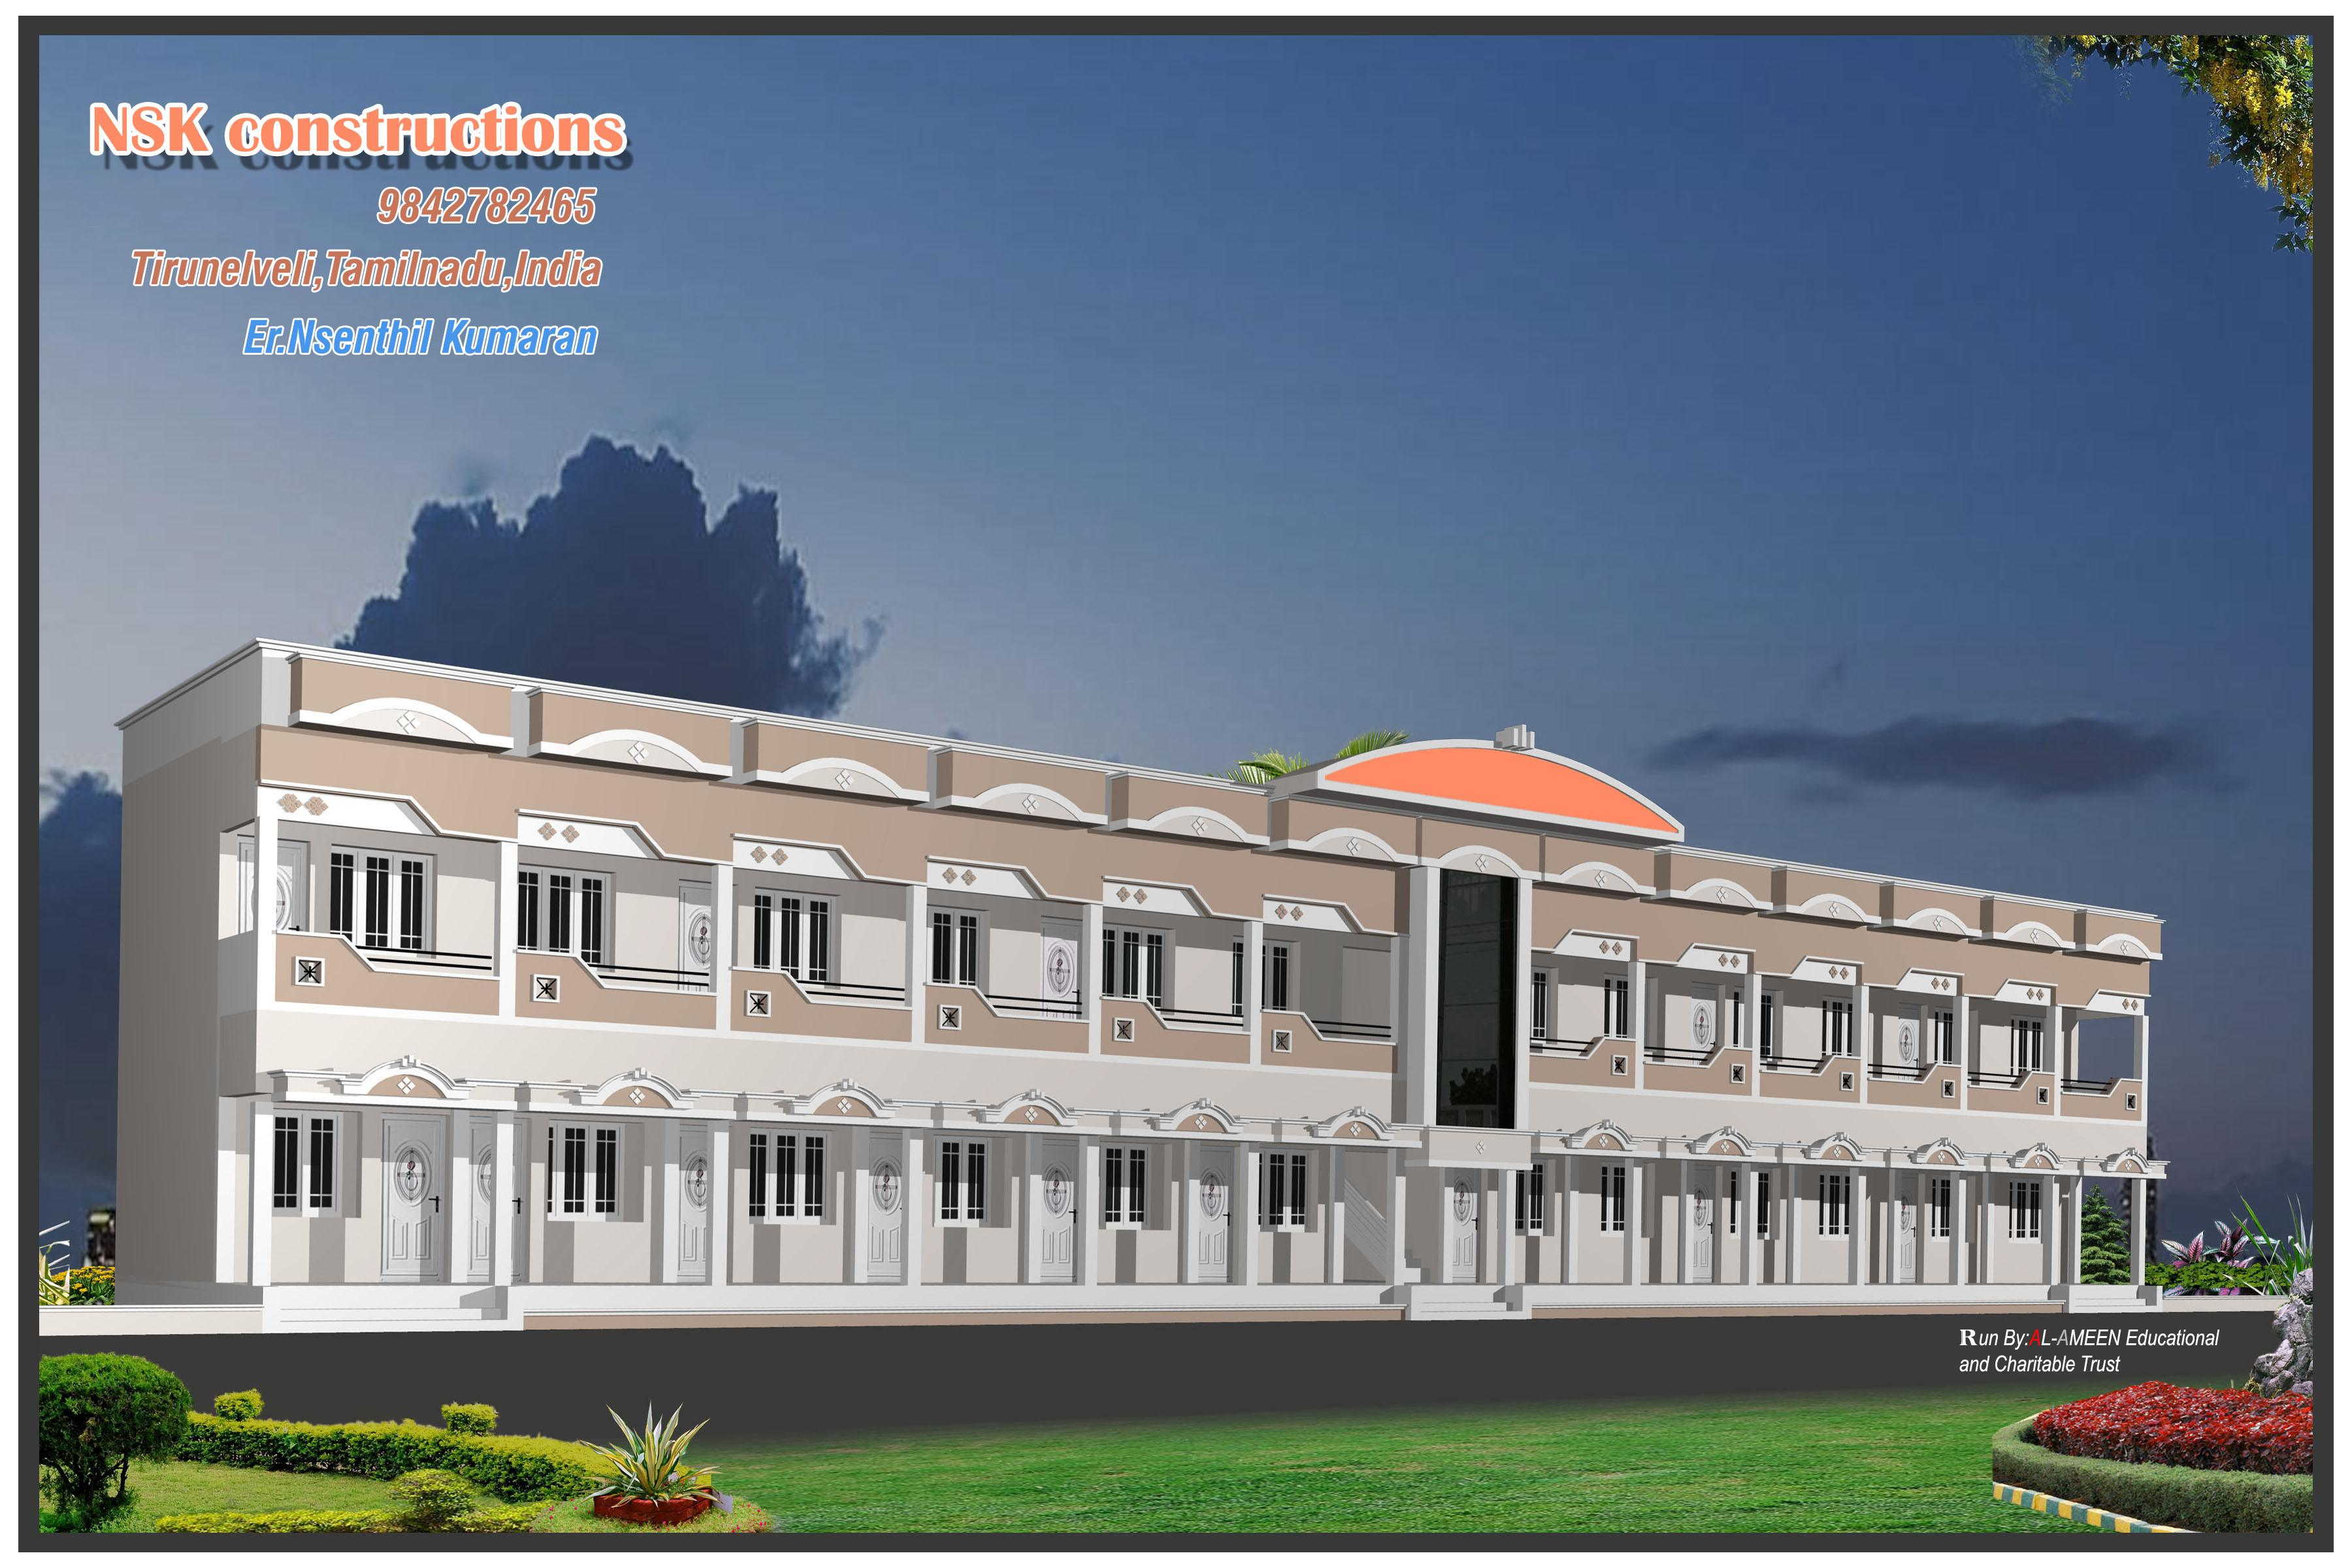 Elevation of school building - GharExpert